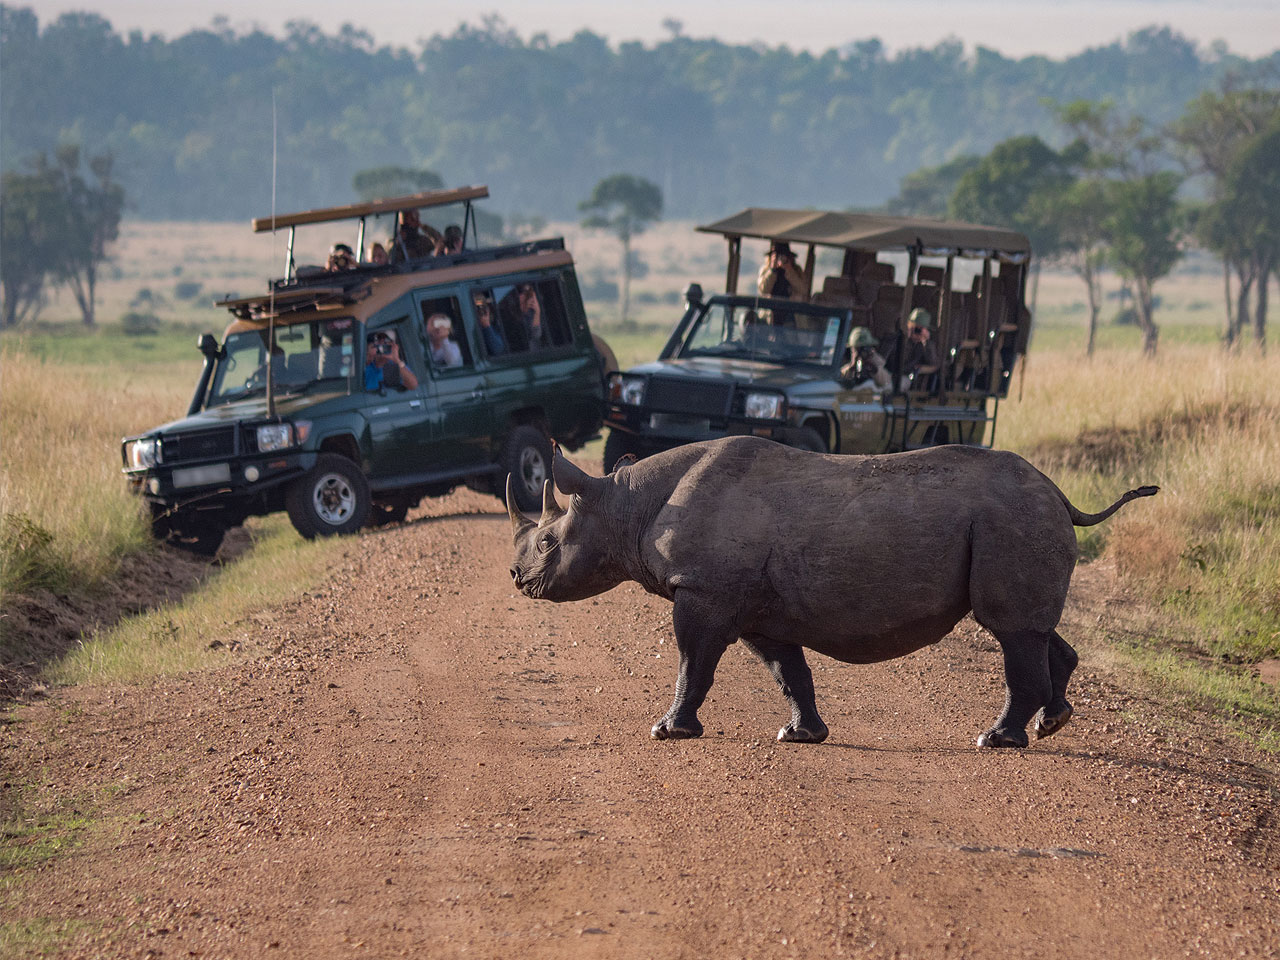 Two open safari vehicles of tourists on a game drive watching as a rhino crosses the gravel road in front of them.